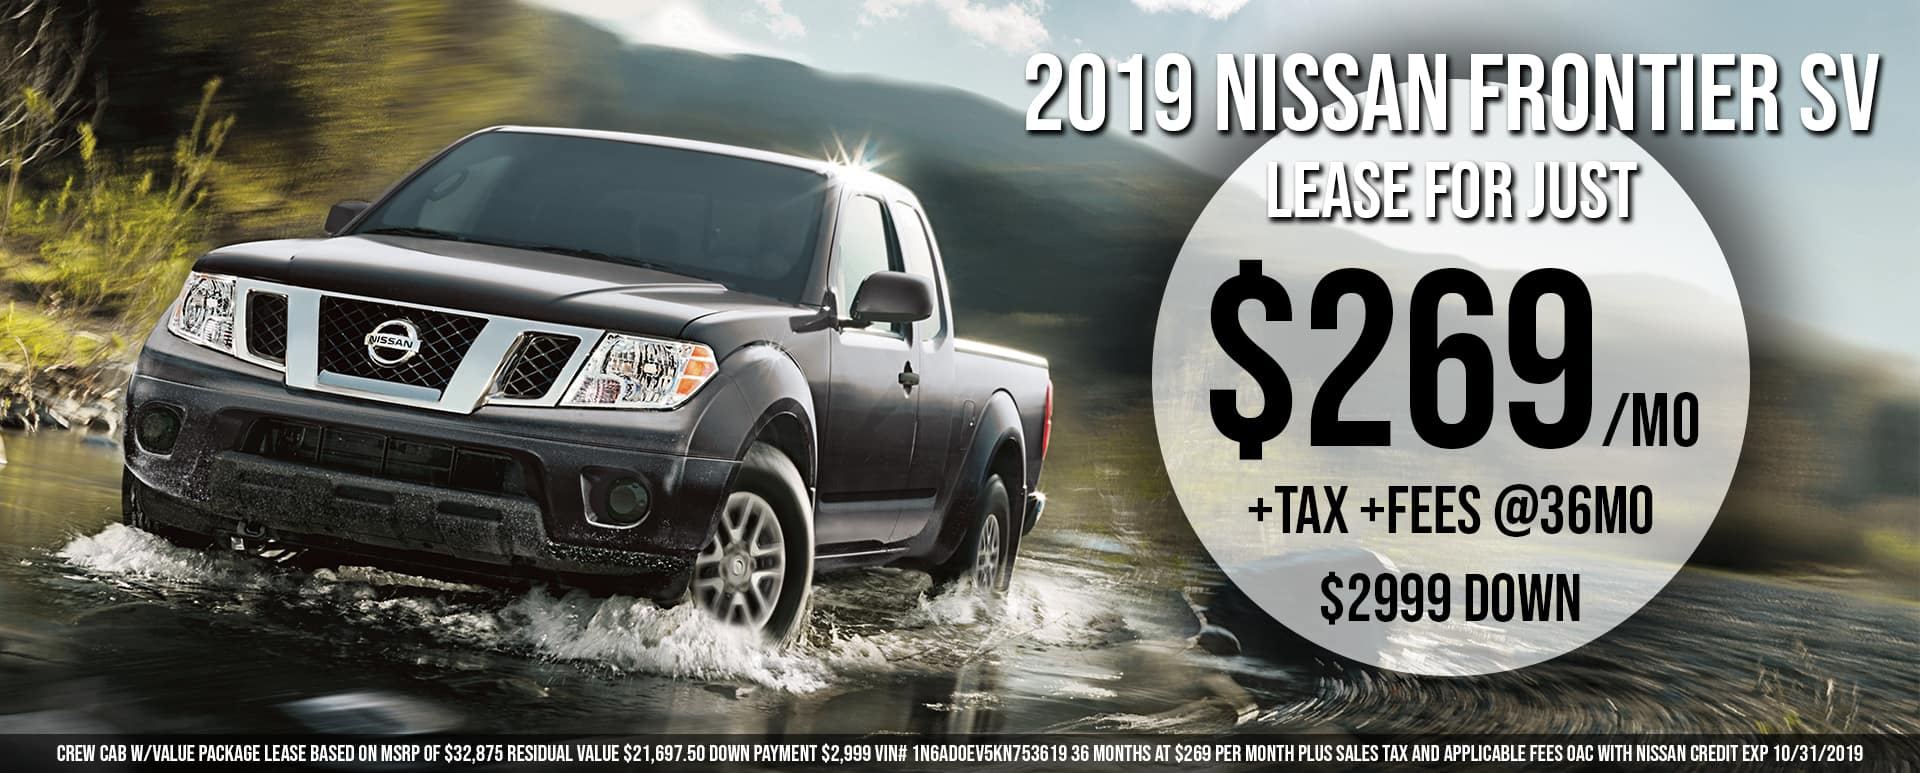 Lease a Frontier for $269/mo!